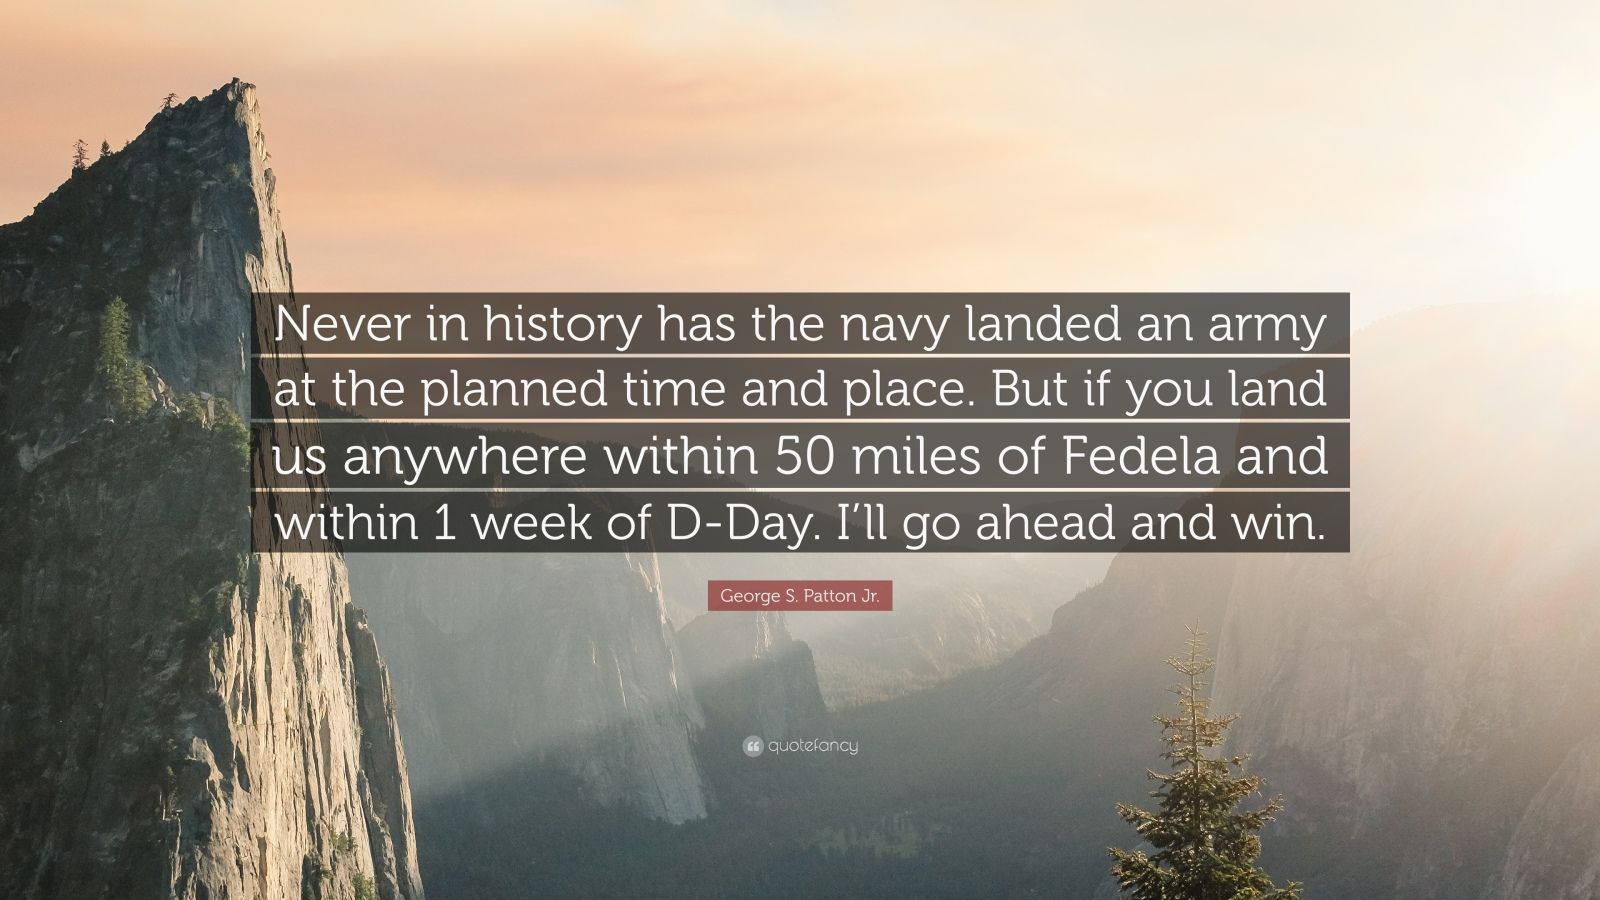 """George S. Patton Jr. Quote: """"Never in history has the navy landed an army at the planned time and place. But if you land us anywhere within 50 miles of Fedela and within 1 week of D-Day. I'll go ahead and win."""""""